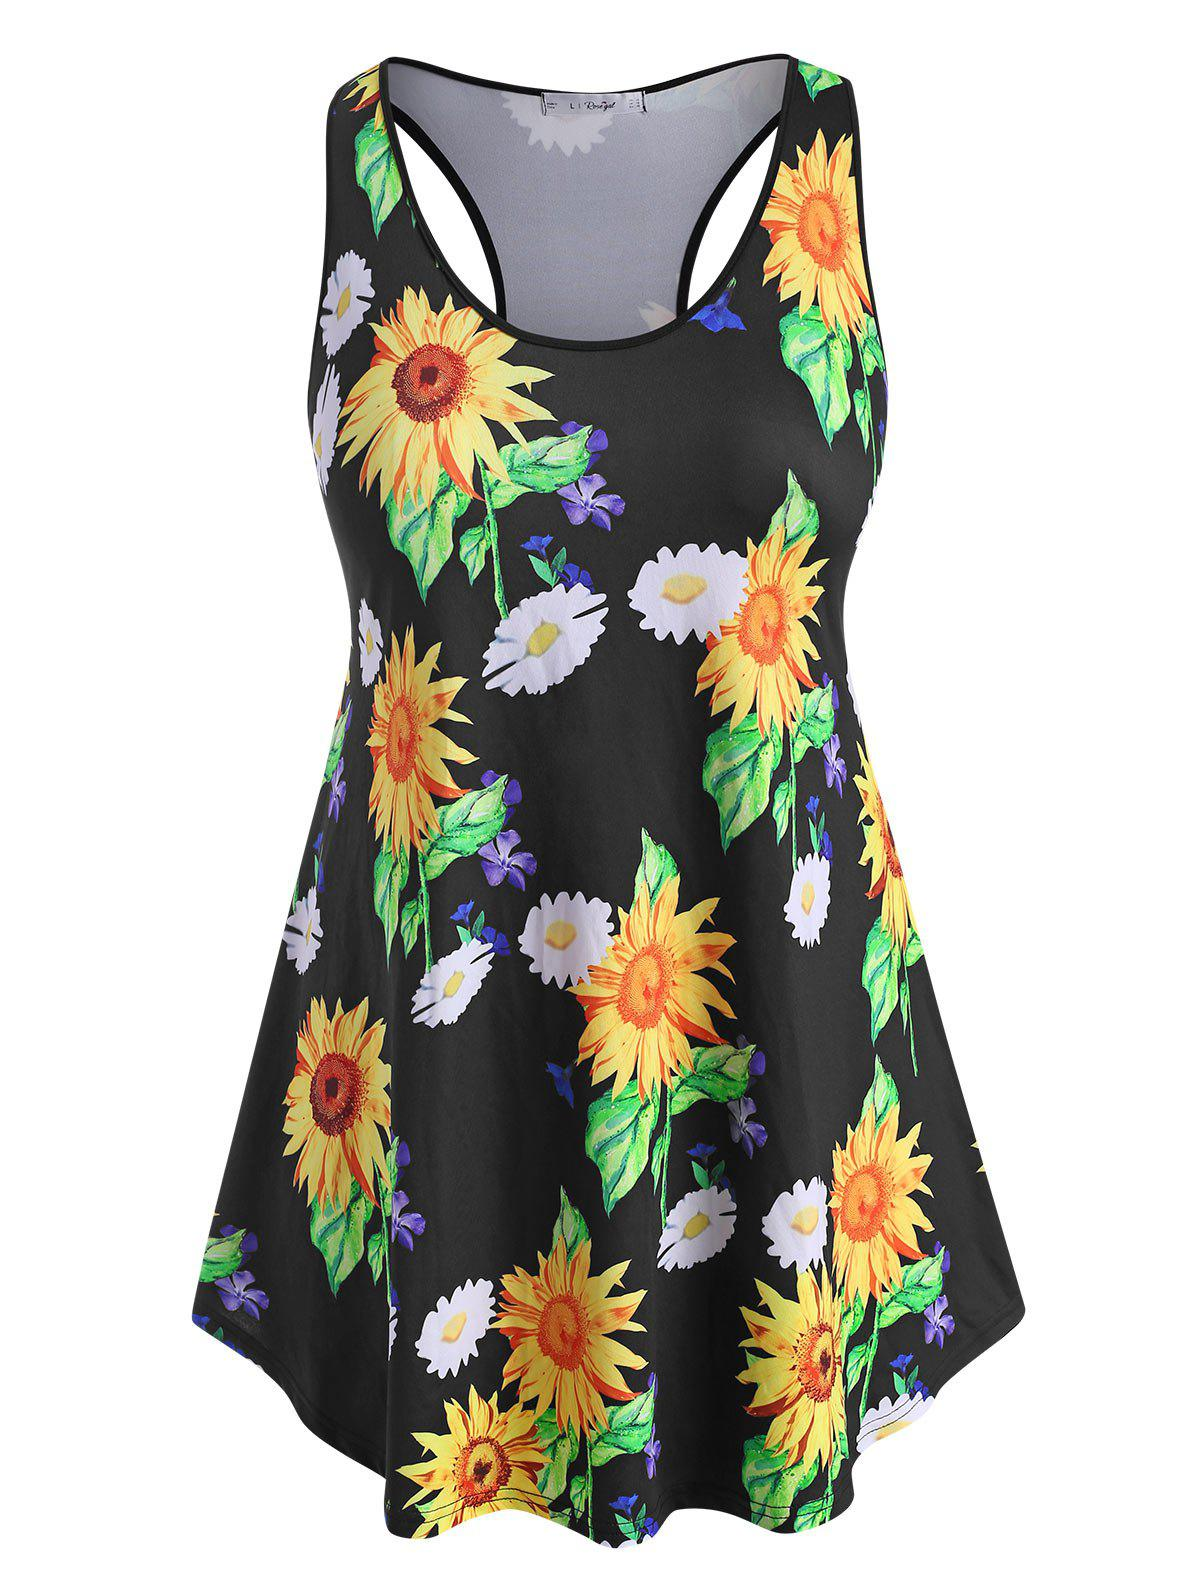 Affordable Racerback Curved Hem Sunflower Plus Size Tank Top